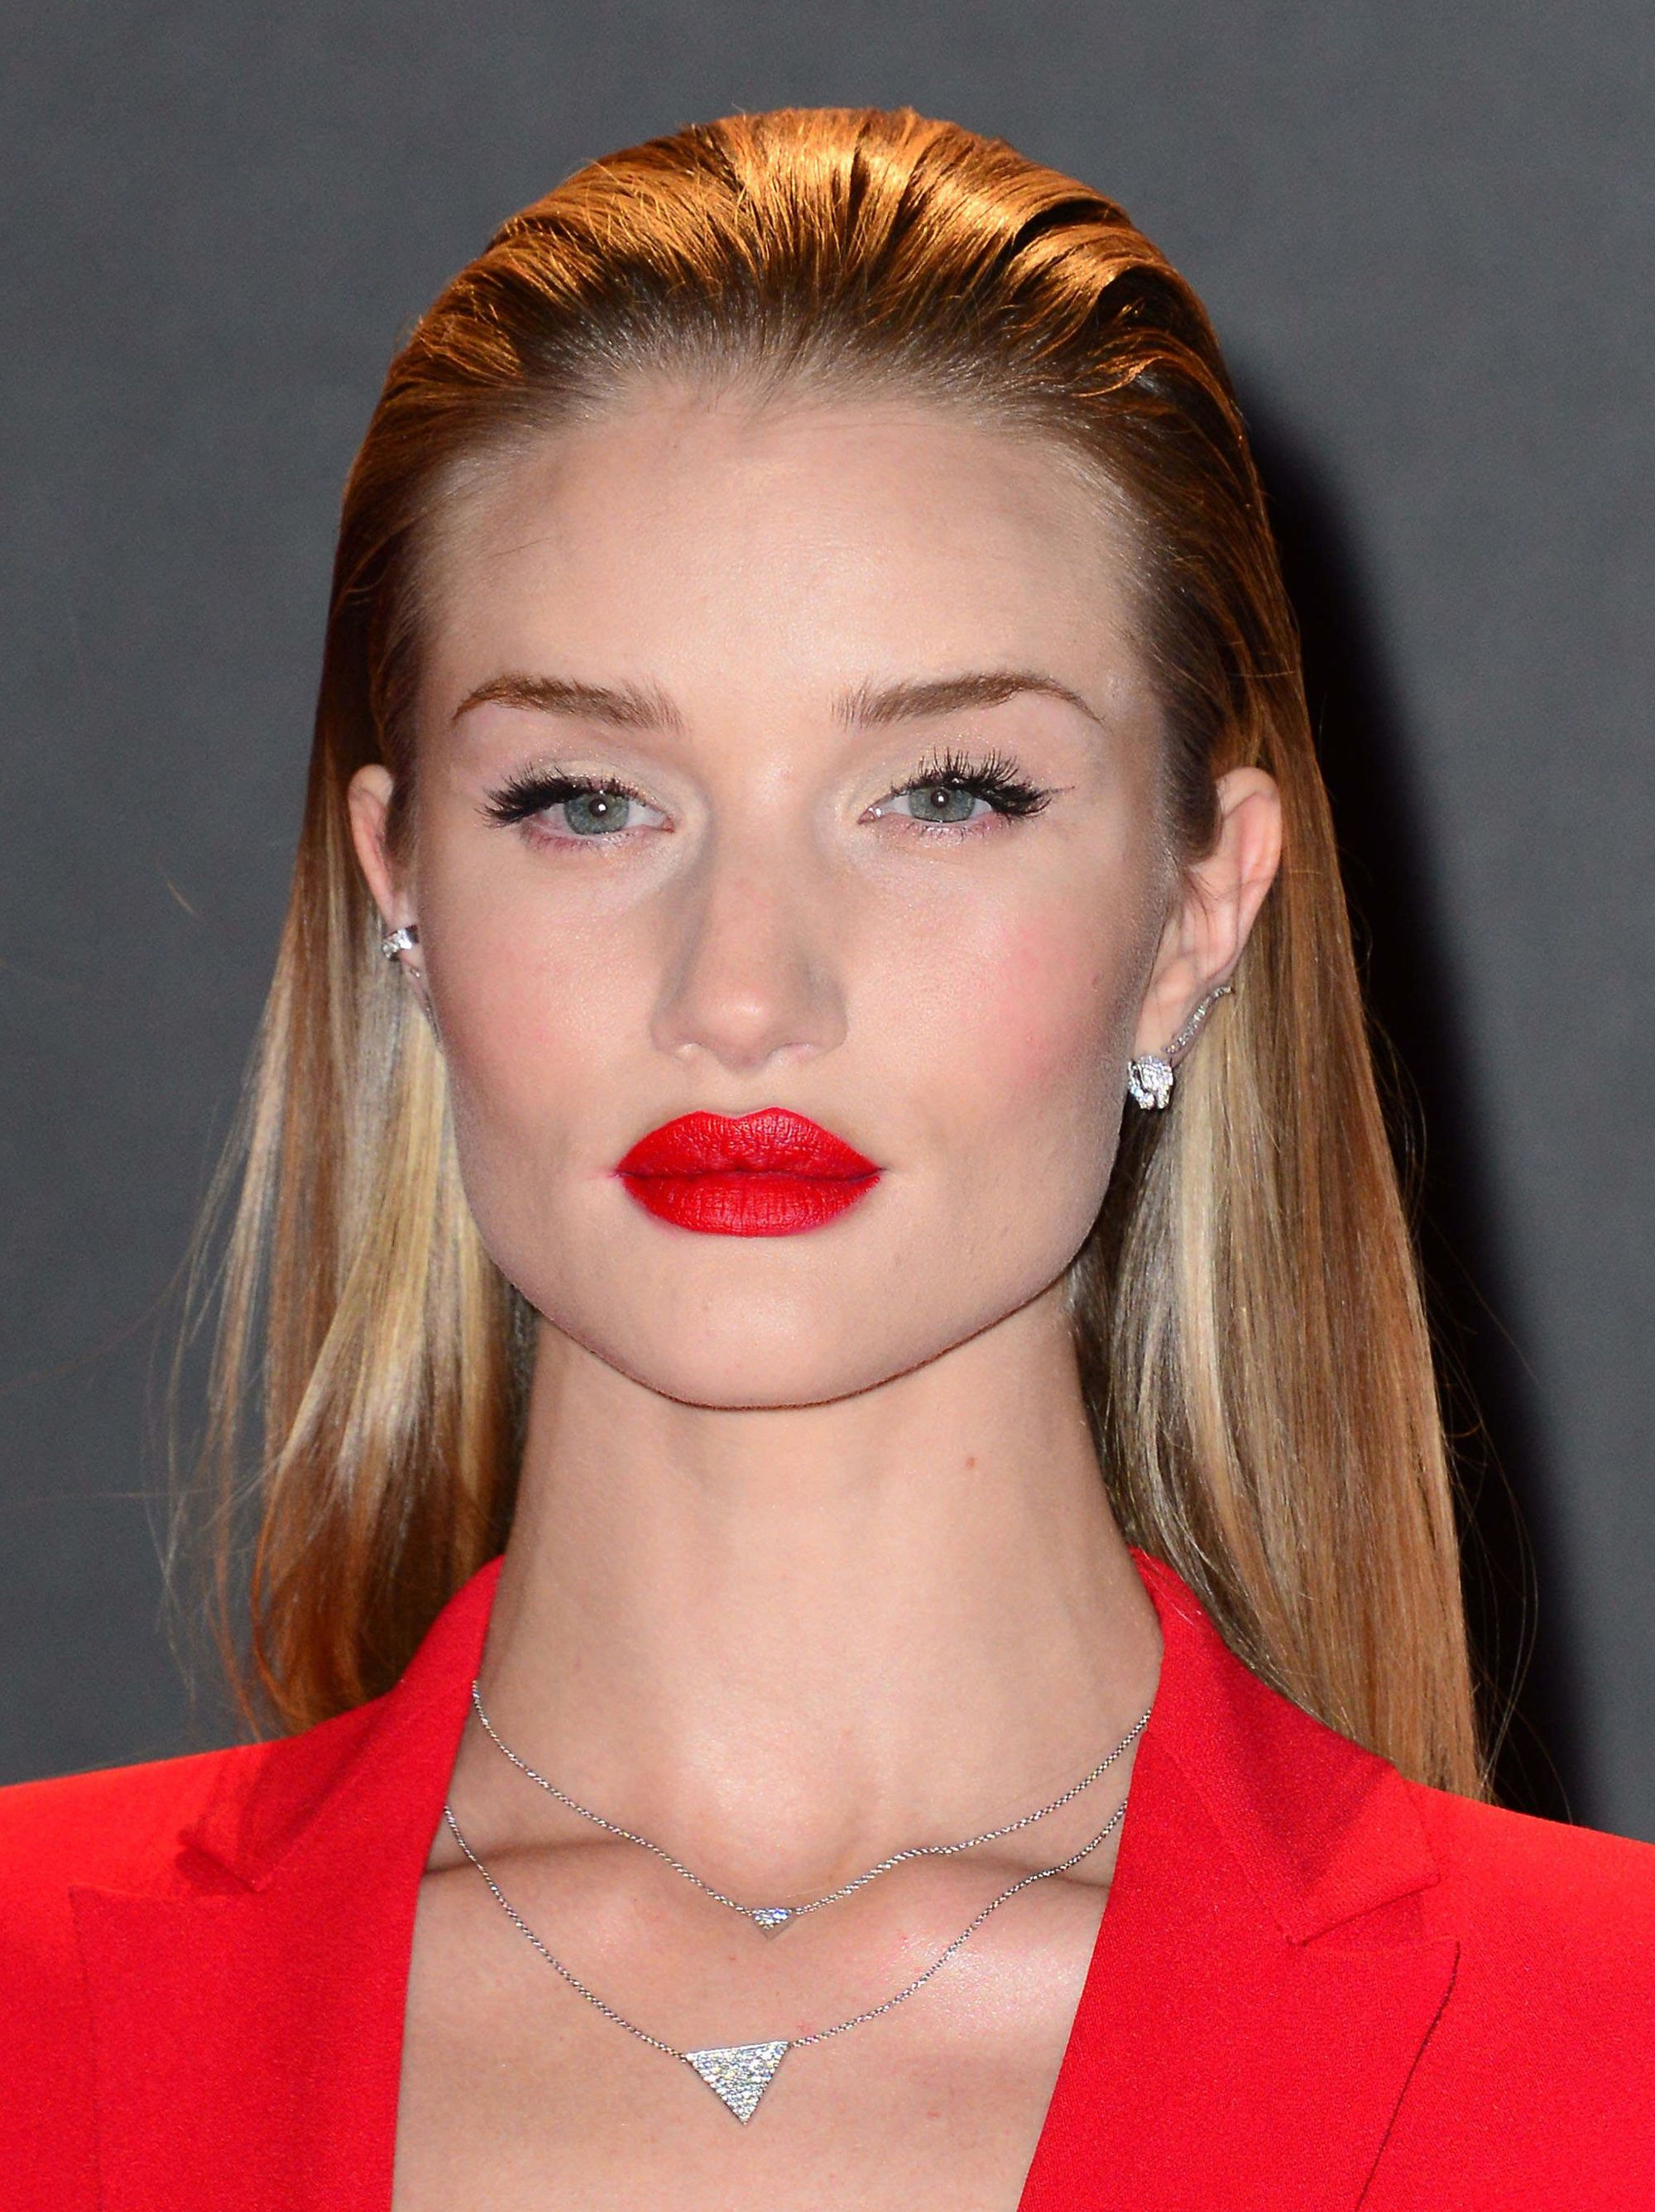 rosie huntington whiteley with slicked back faux undercut hairstyle on red carpet